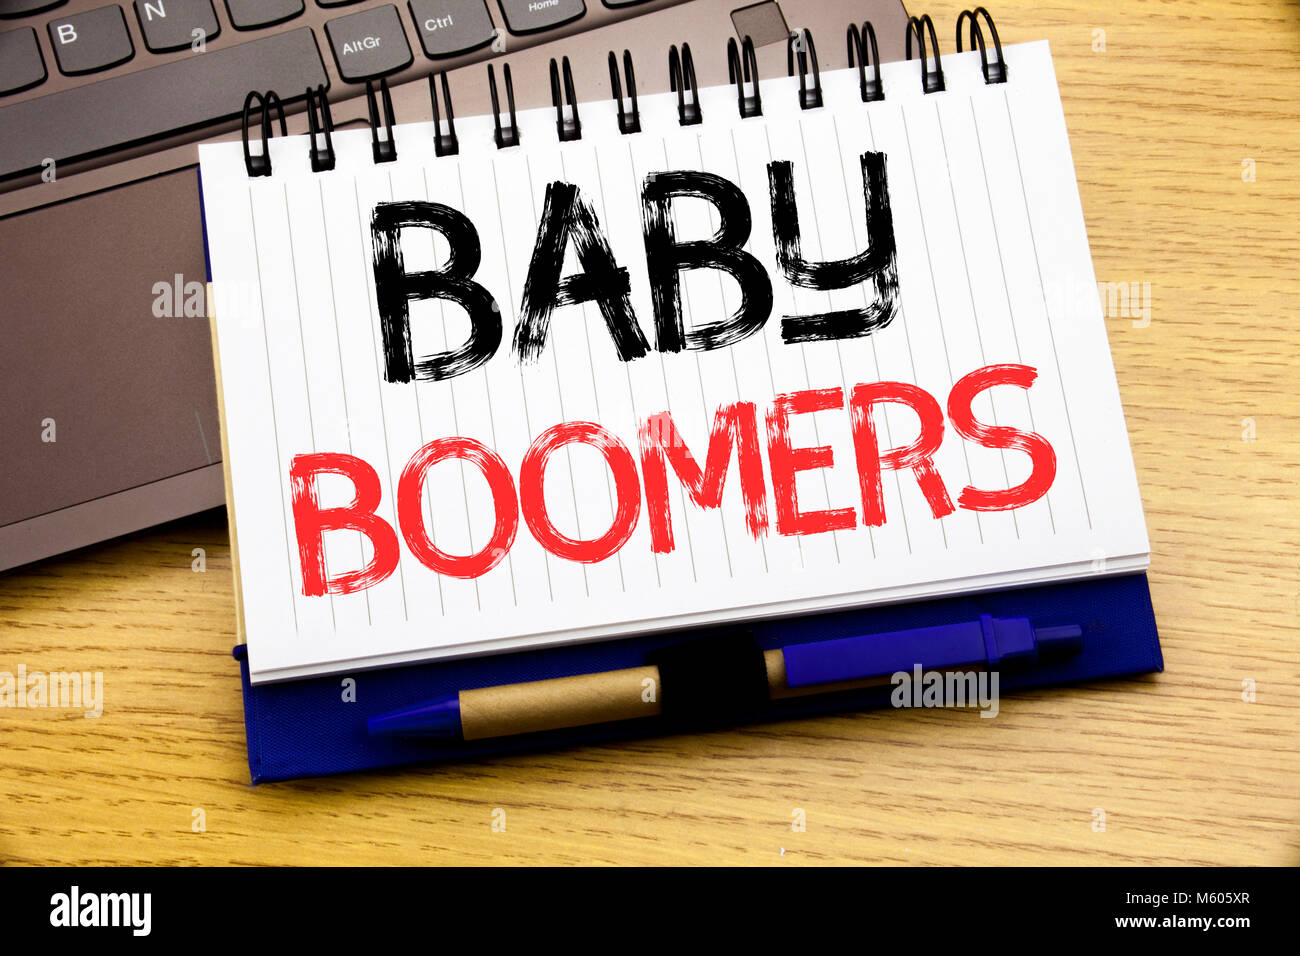 Examples List on Baby Boomers